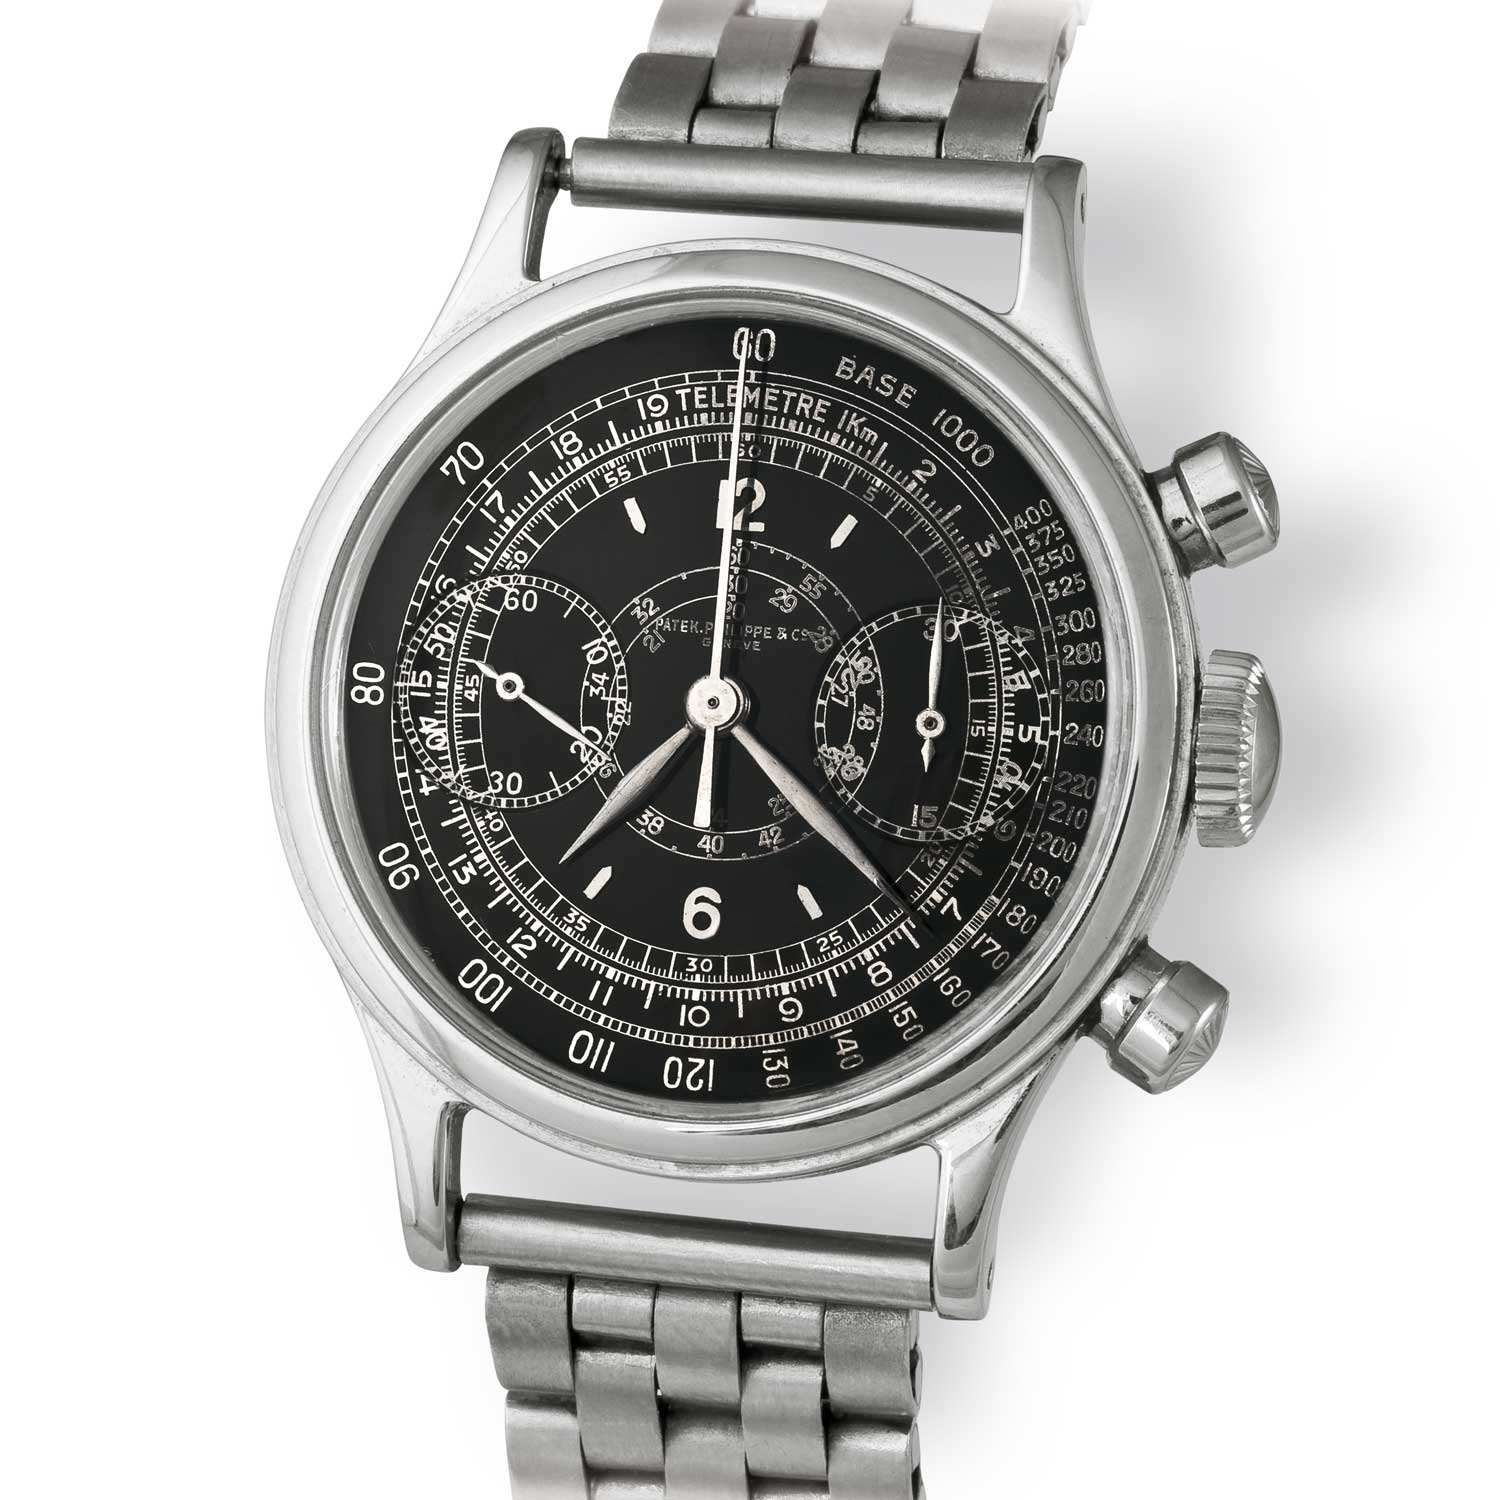 Patek Philippe ref. 1463 steel chronograph with black scientific dial (Image: John Goldberger)